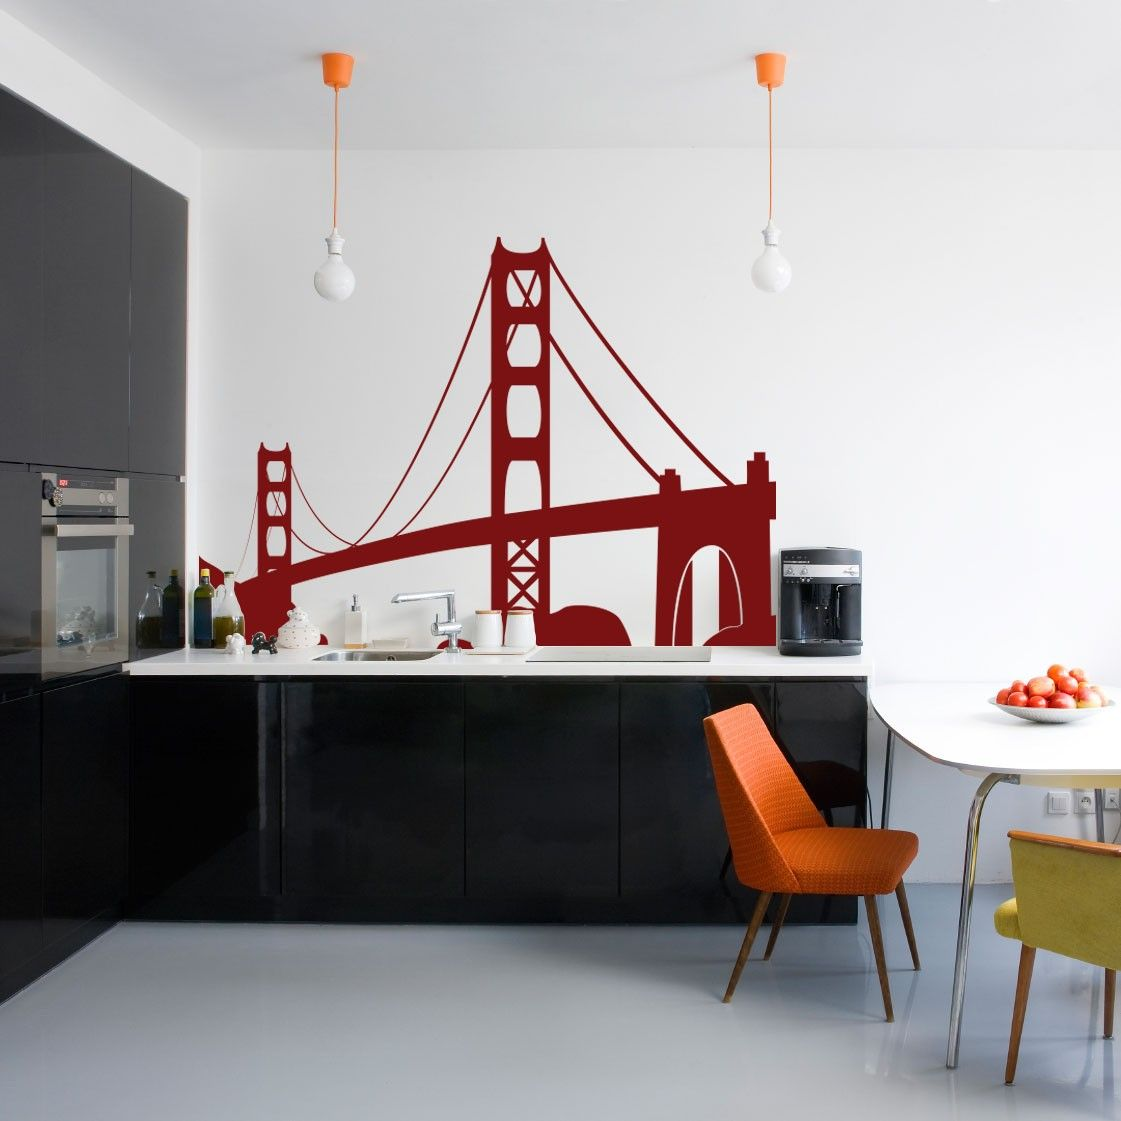 Travel Landmarks USA San Francisco Golden Gate Bridge - Vinyl Wall Art  Decal for Homes,